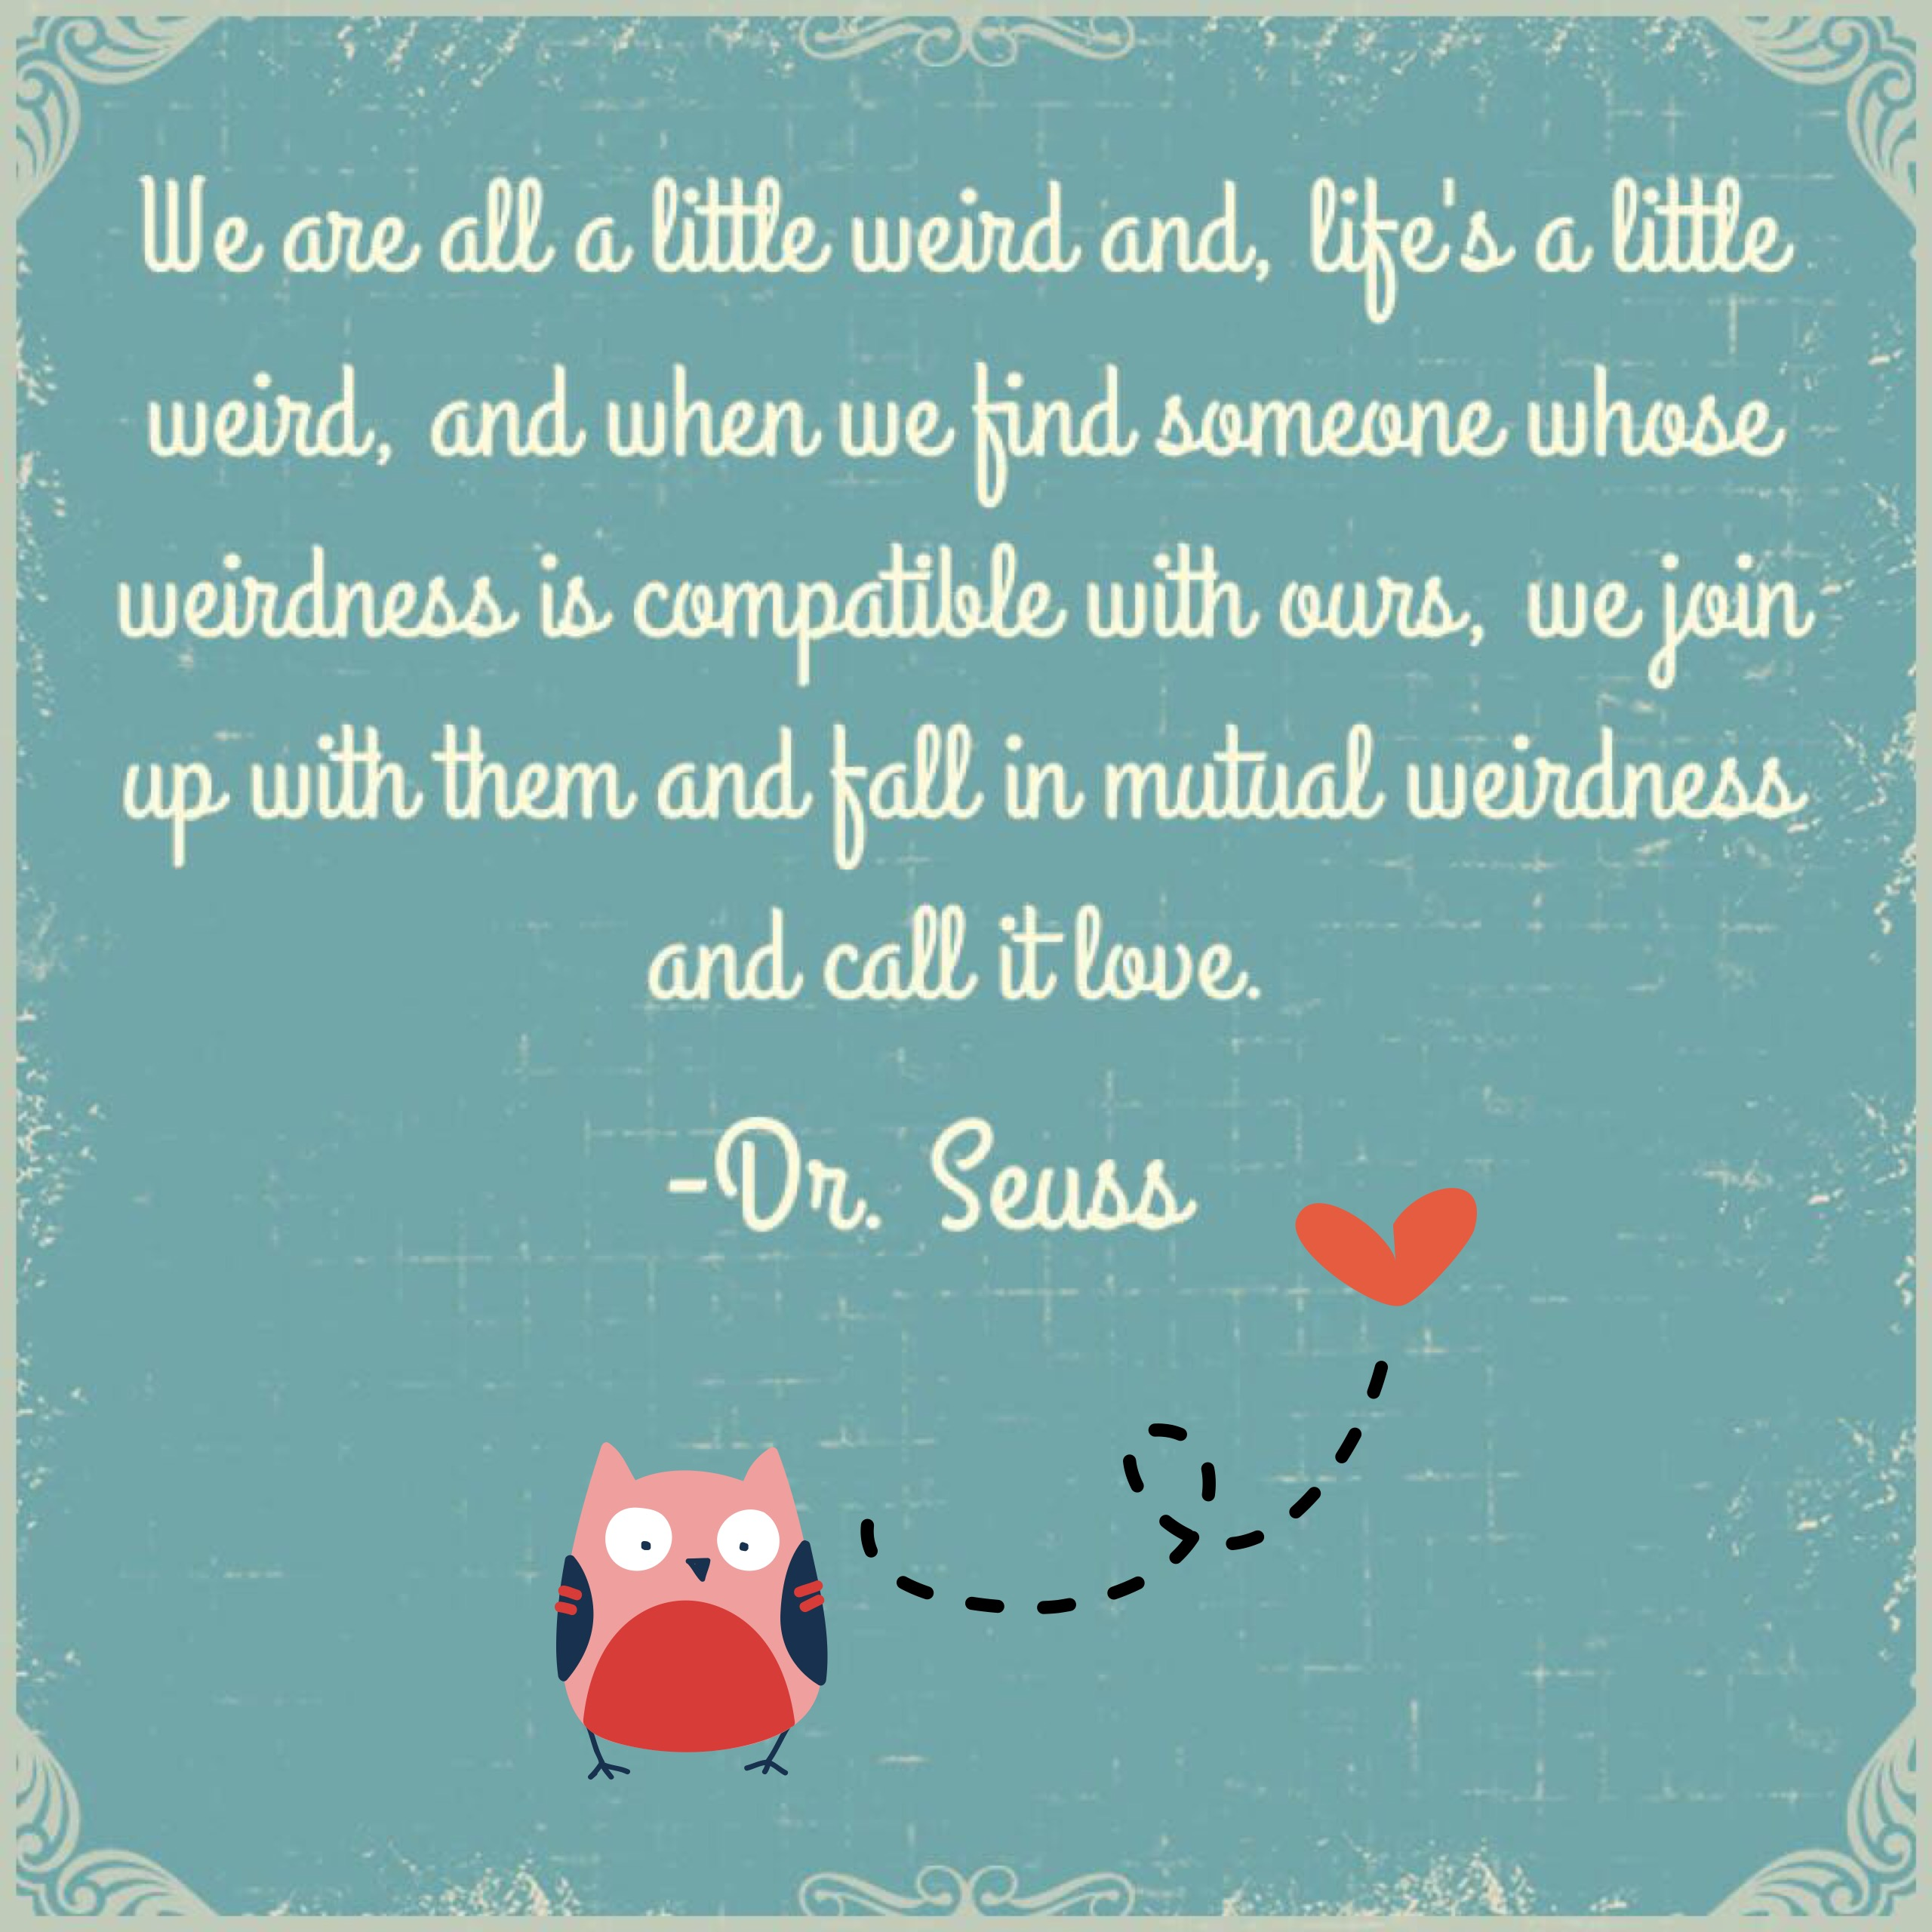 Love Quote Dr Seuss Fall In Mutual Weirdness And Call It Love…  The Lone Panda